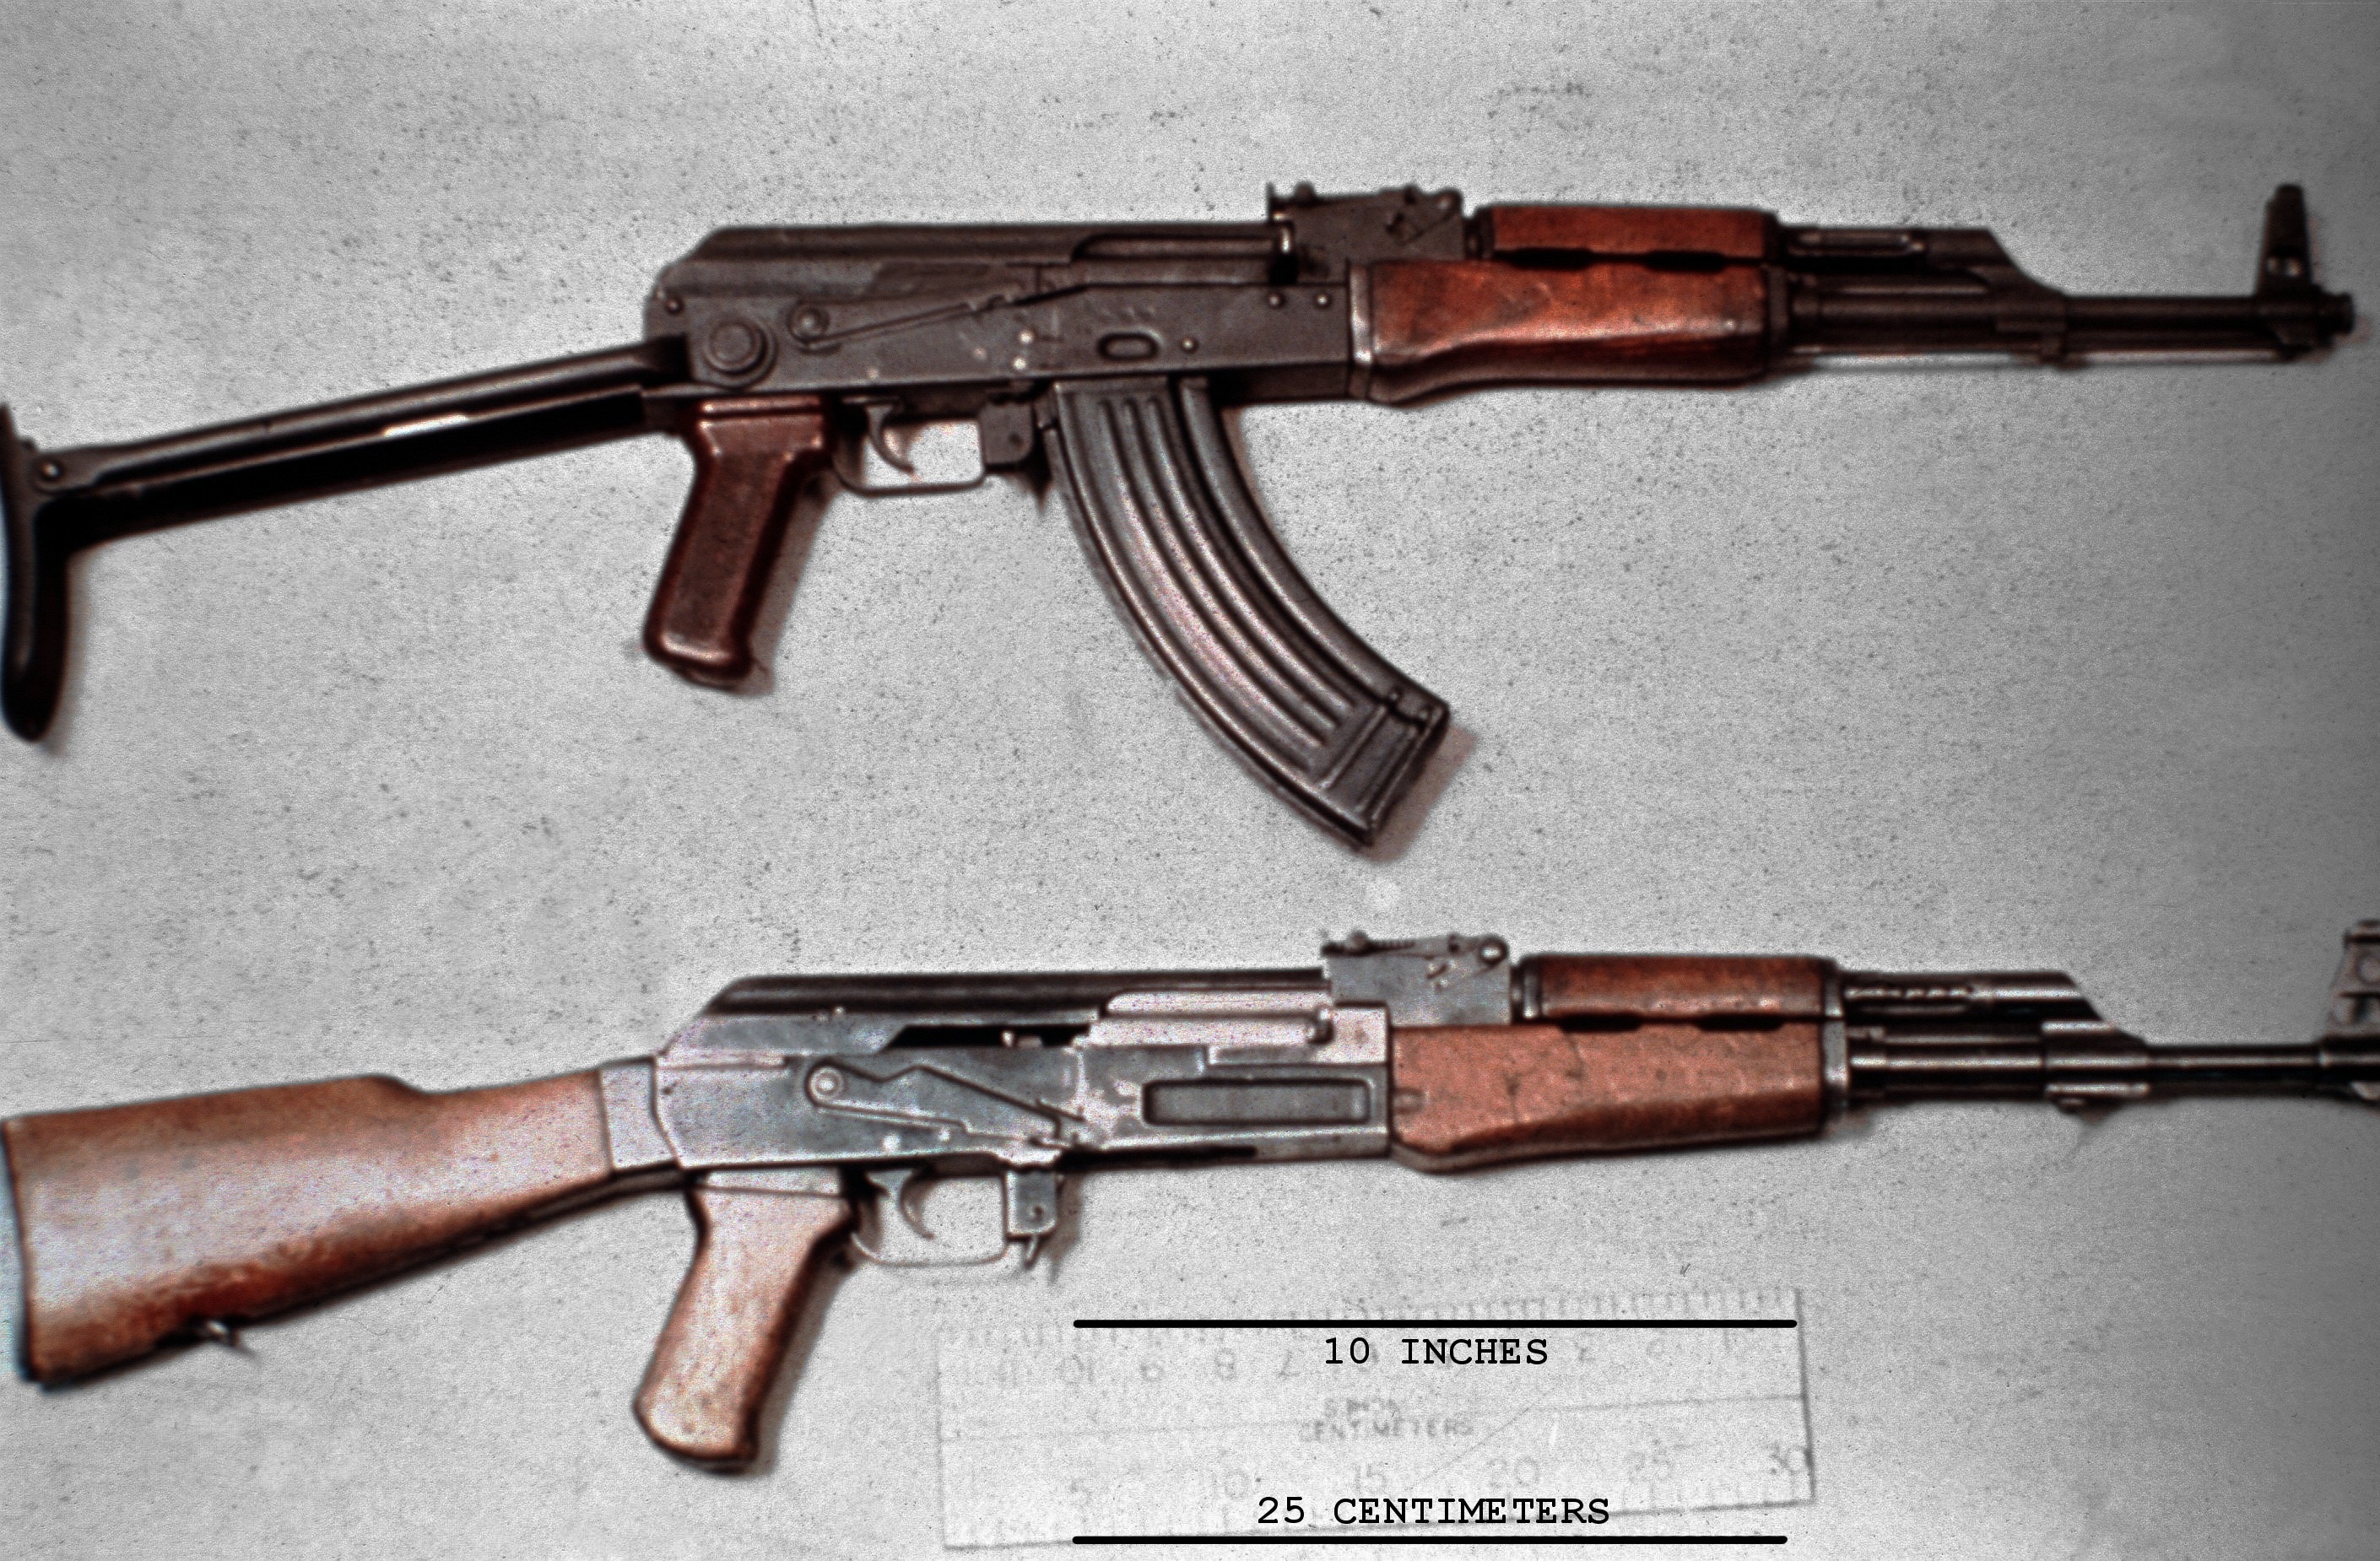 https://upload.wikimedia.org/wikipedia/commons/a/a4/AKMS_and_AK-47_DD-ST-85-01270.jpg